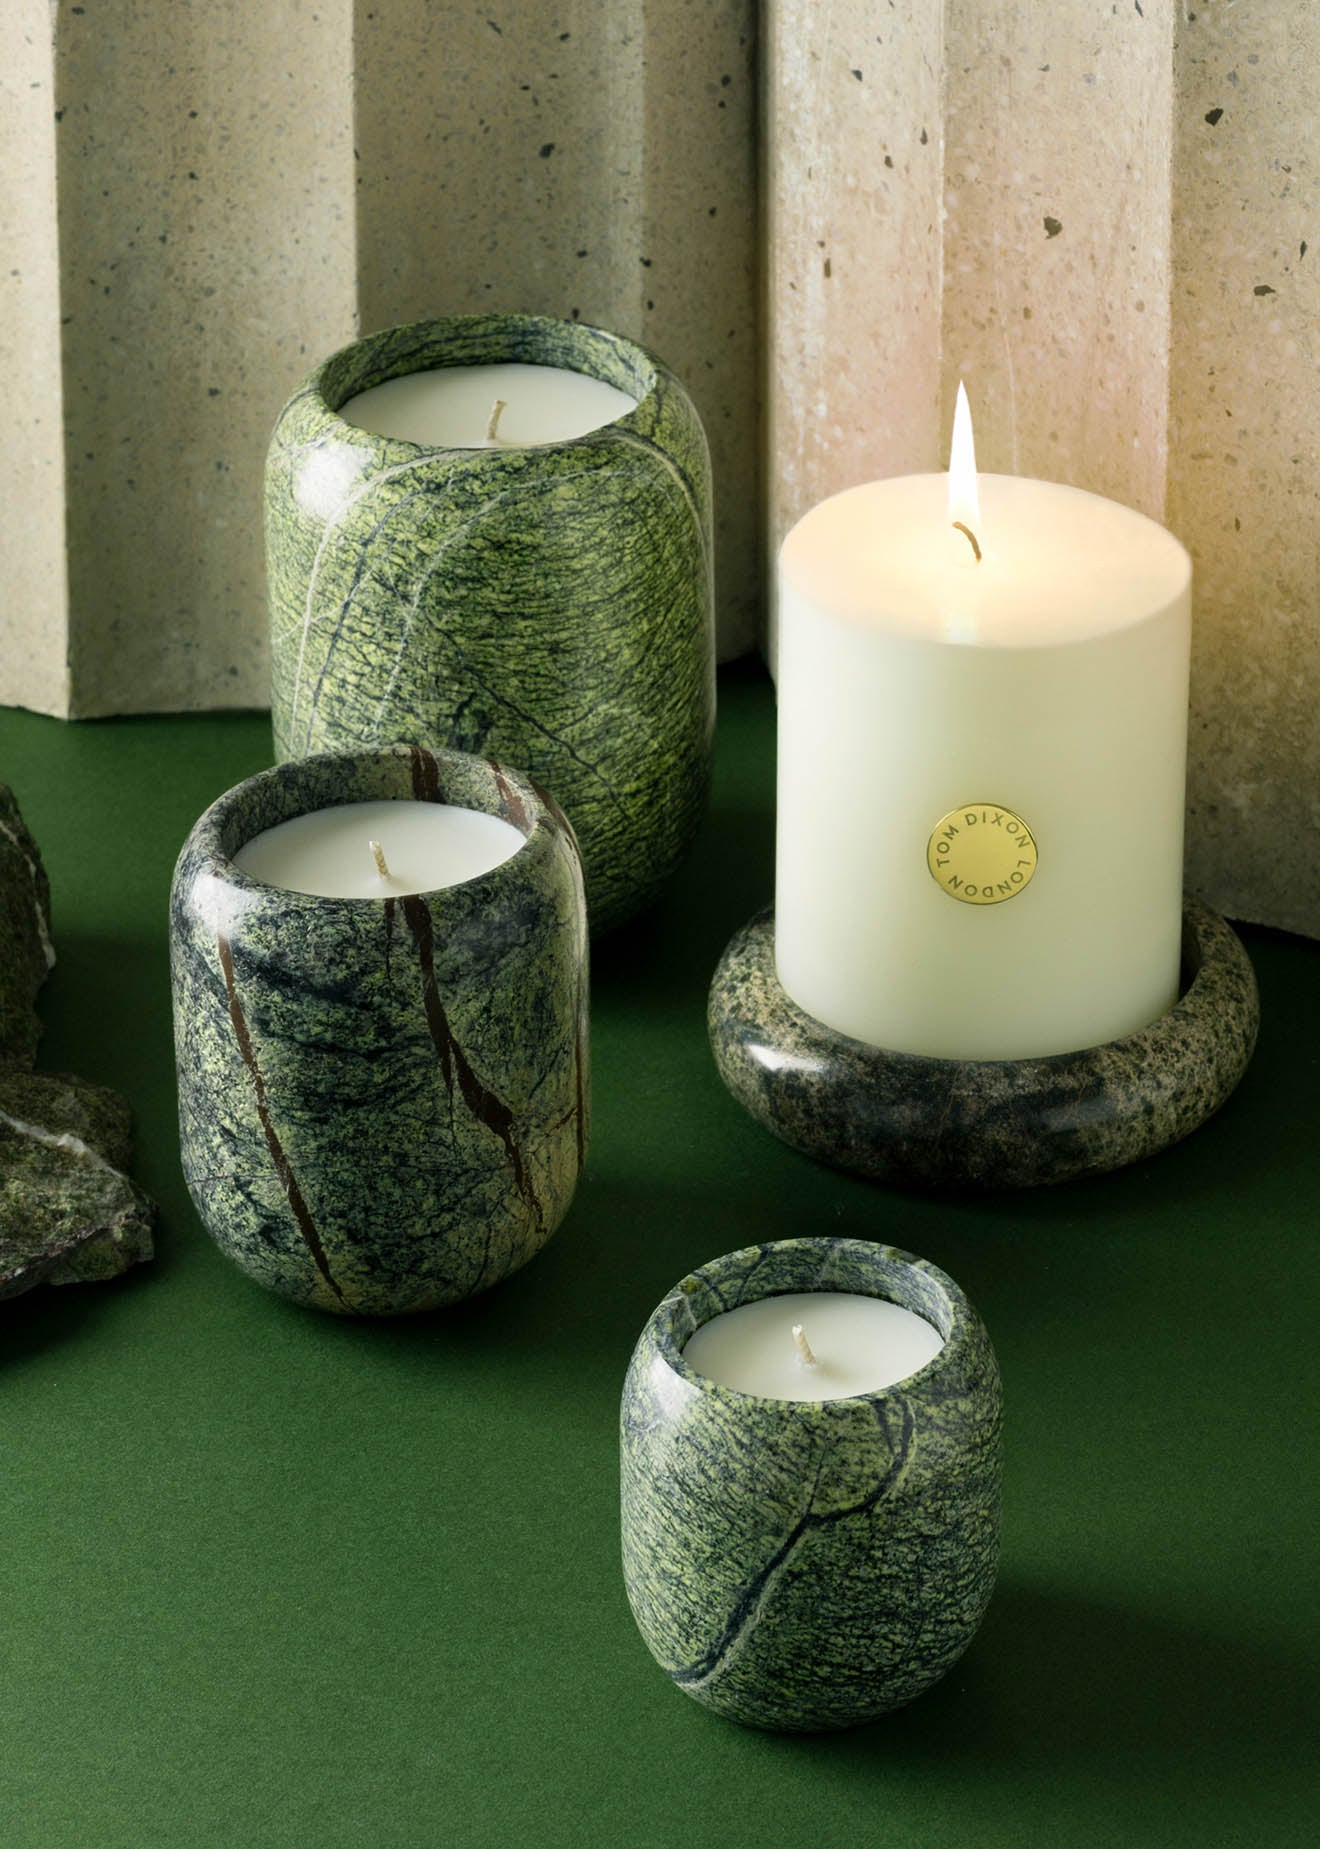 Tom Dixon Stone collection of scents and candles